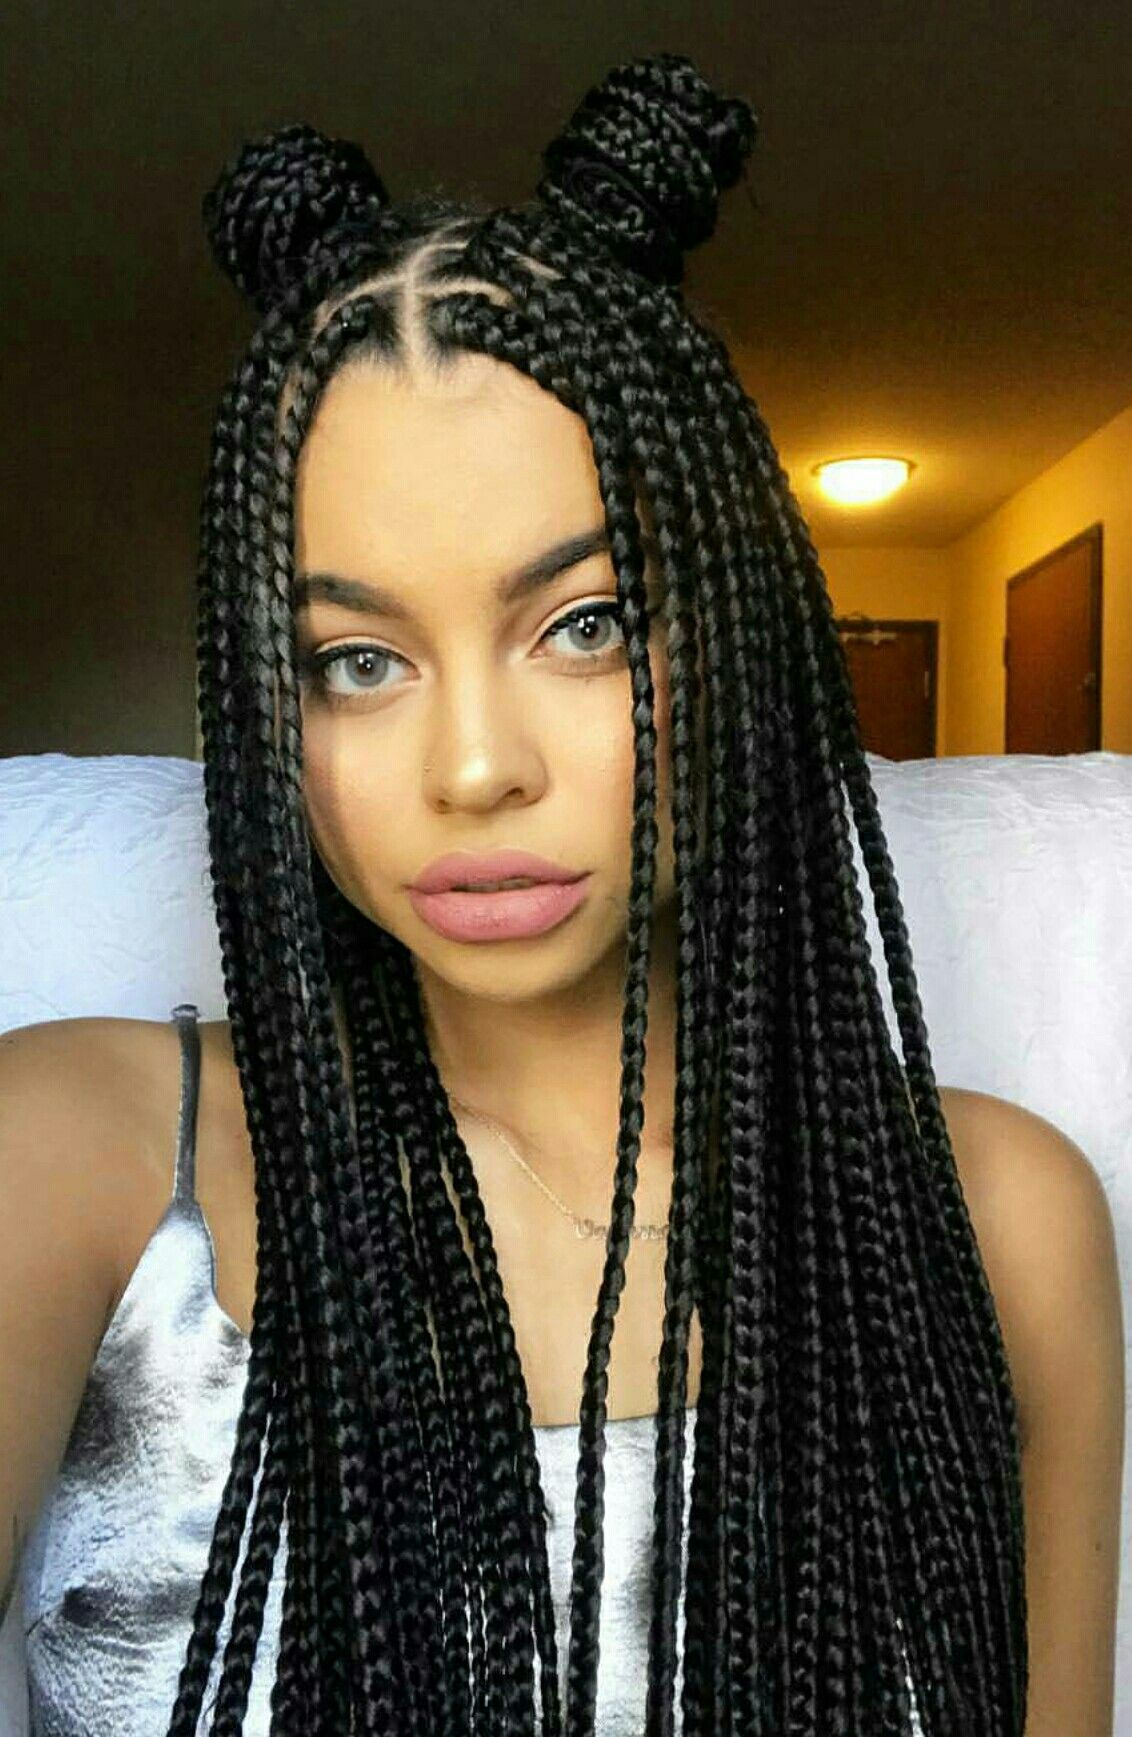 A quin no le viene  Makeup in 2019  Pinterest  Box braids hairstyles Box braids styling